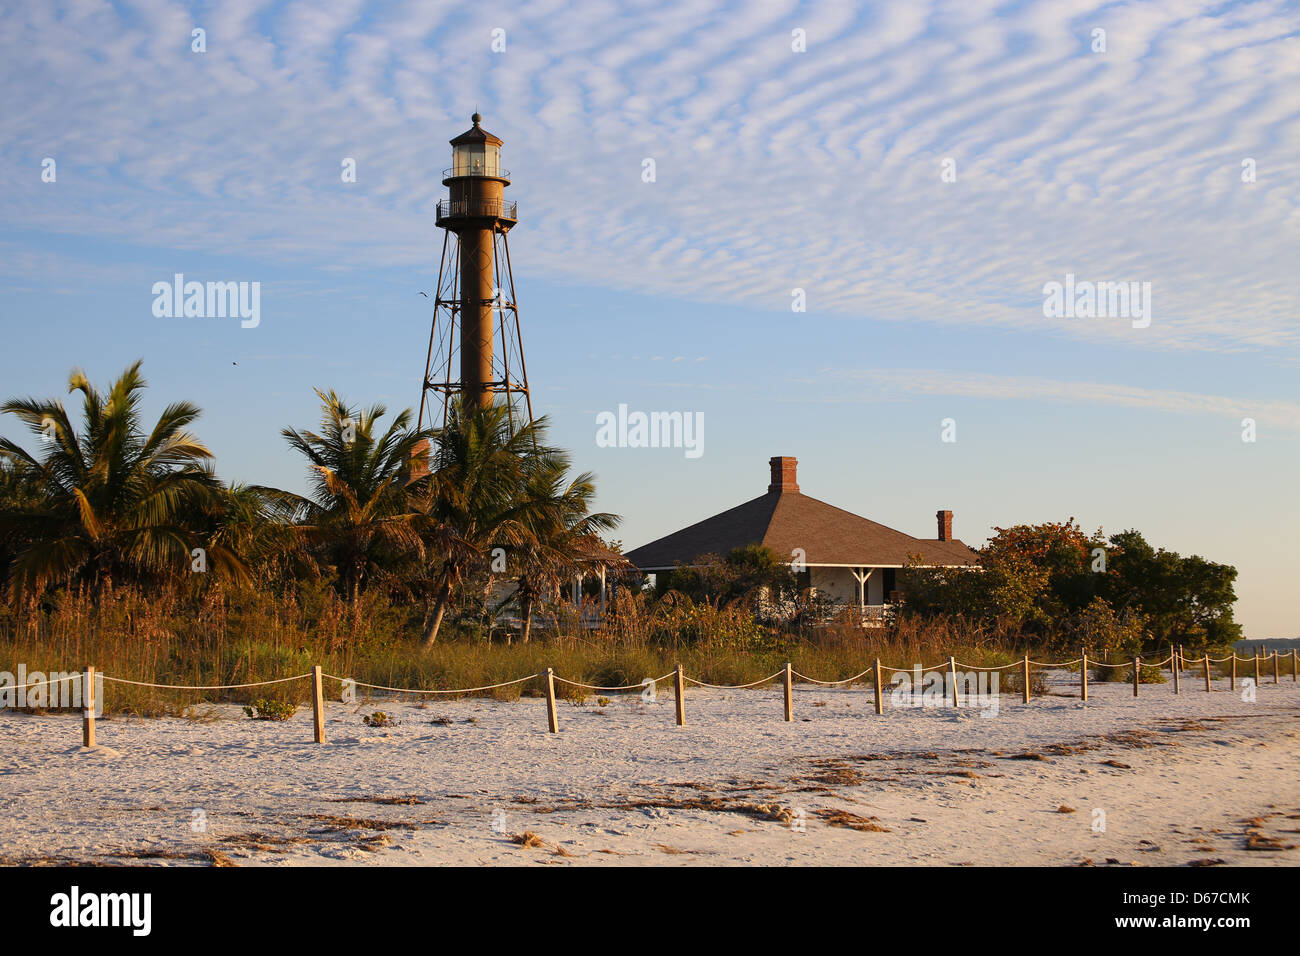 The Sanibel Island Light Or Point Ybel Light Is The First Lighthouse On  Floridau0027s Gulf Coast North Of Key West Design